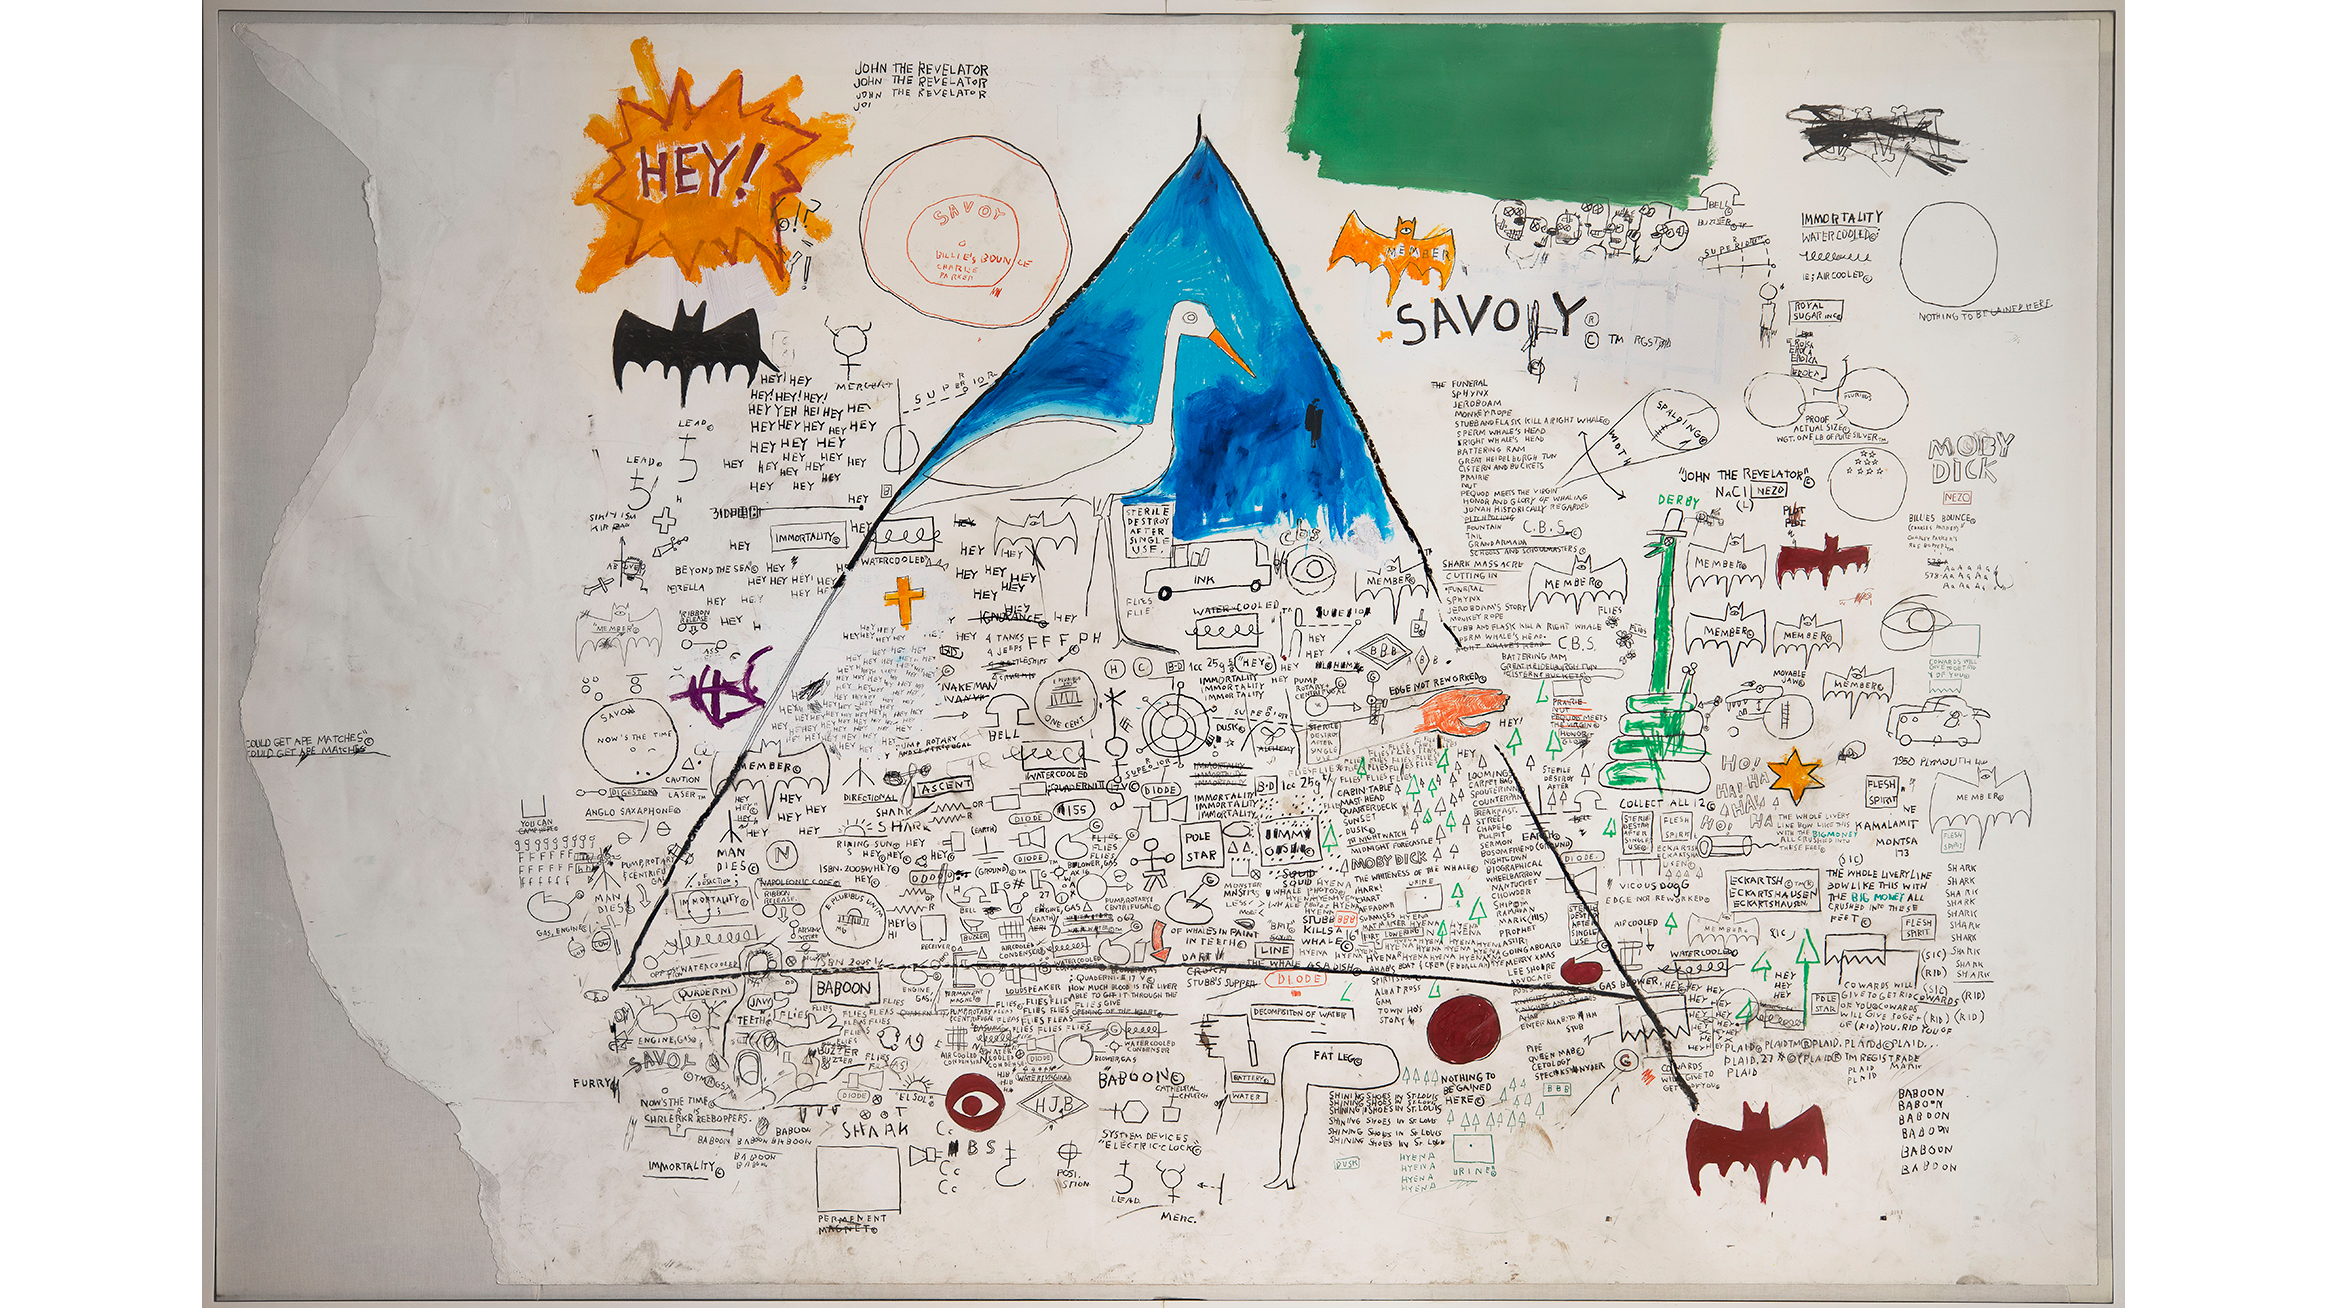 Jean-Michel Basquiat (American, 1960–1988). Untitled, 1986. Acrylic, collage, and oilstick on paper on canvas, 94 1/8 x 136 2/5 in. (239 x 346.5 cm).